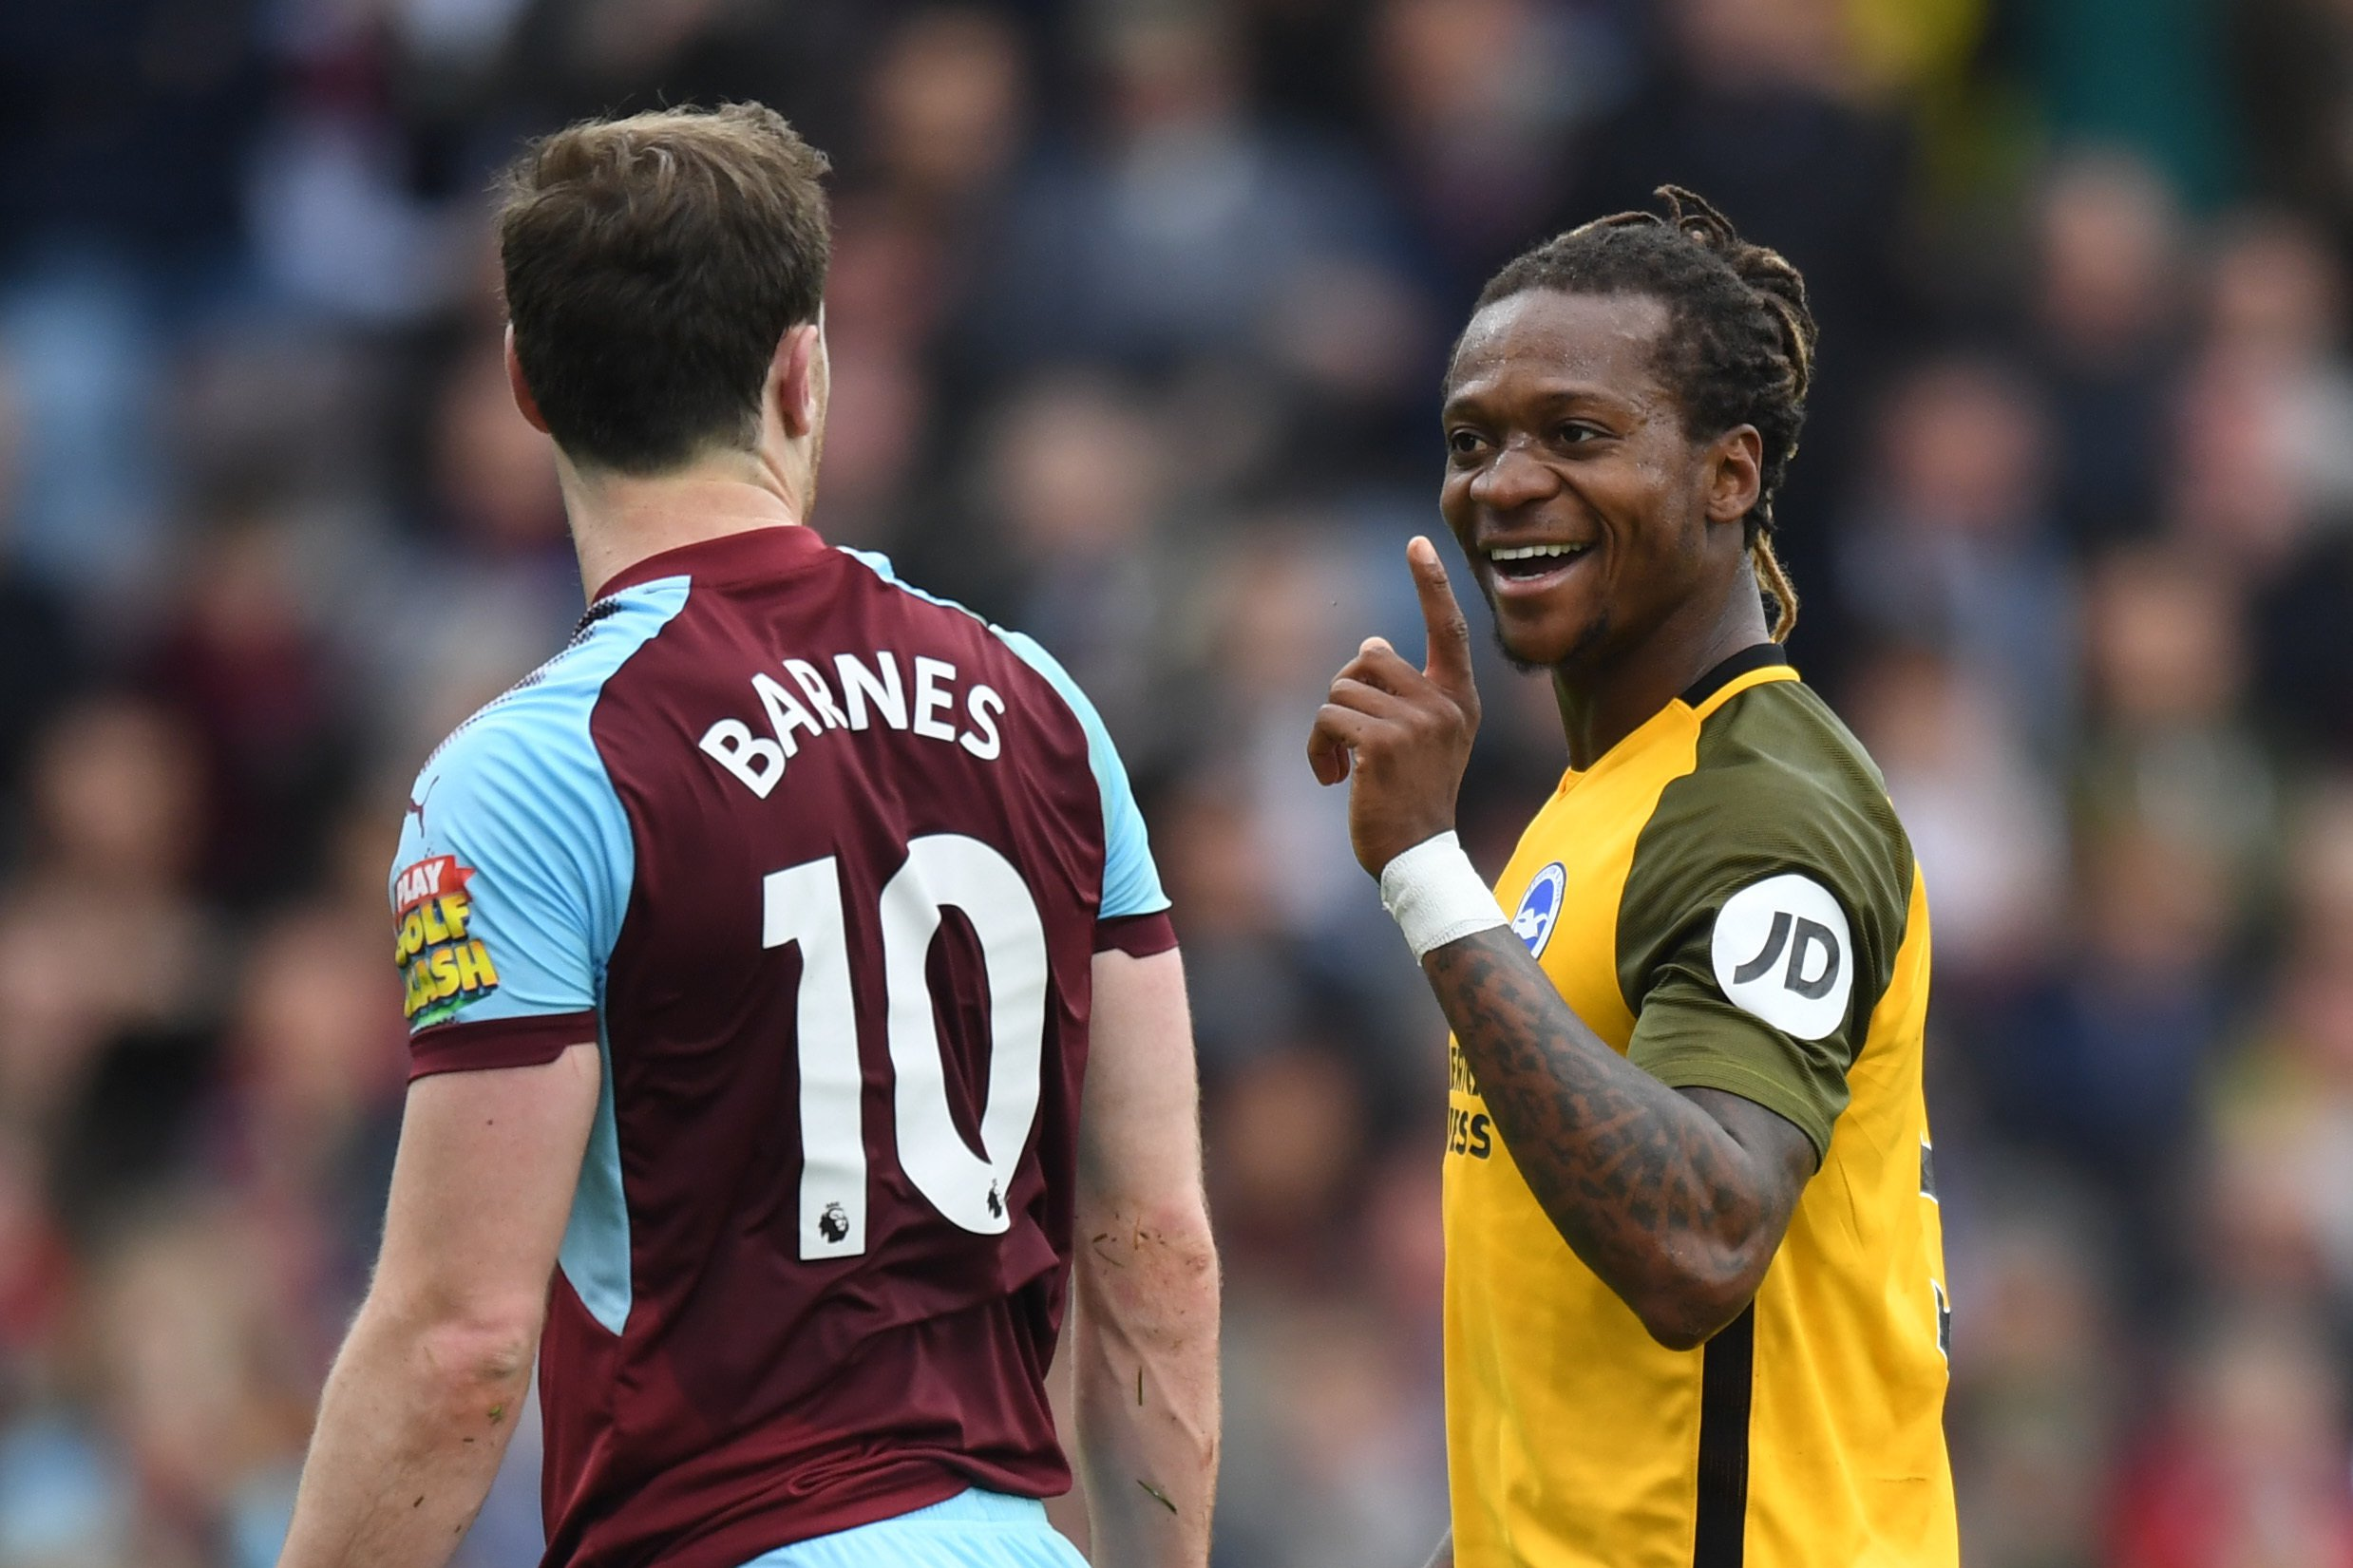 """Brighton and Hove Albion's Gaetan Bong gestures towards Burnley's Ashley Barnes during the Premier League match at Turf Moor, Burnley. PRESS ASSOCIATION Photo. Picture date: Saturday April 28, 2018. See PA story SOCCER Burnley. Photo credit should read: Anthony Devlin/PA Wire. RESTRICTIONS: EDITORIAL USE ONLY No use with unauthorised audio, video, data, fixture lists, club/league logos or """"live"""" services. Online in-match use limited to 75 images, no video emulation. No use in betting, games or single club/league/player publications."""